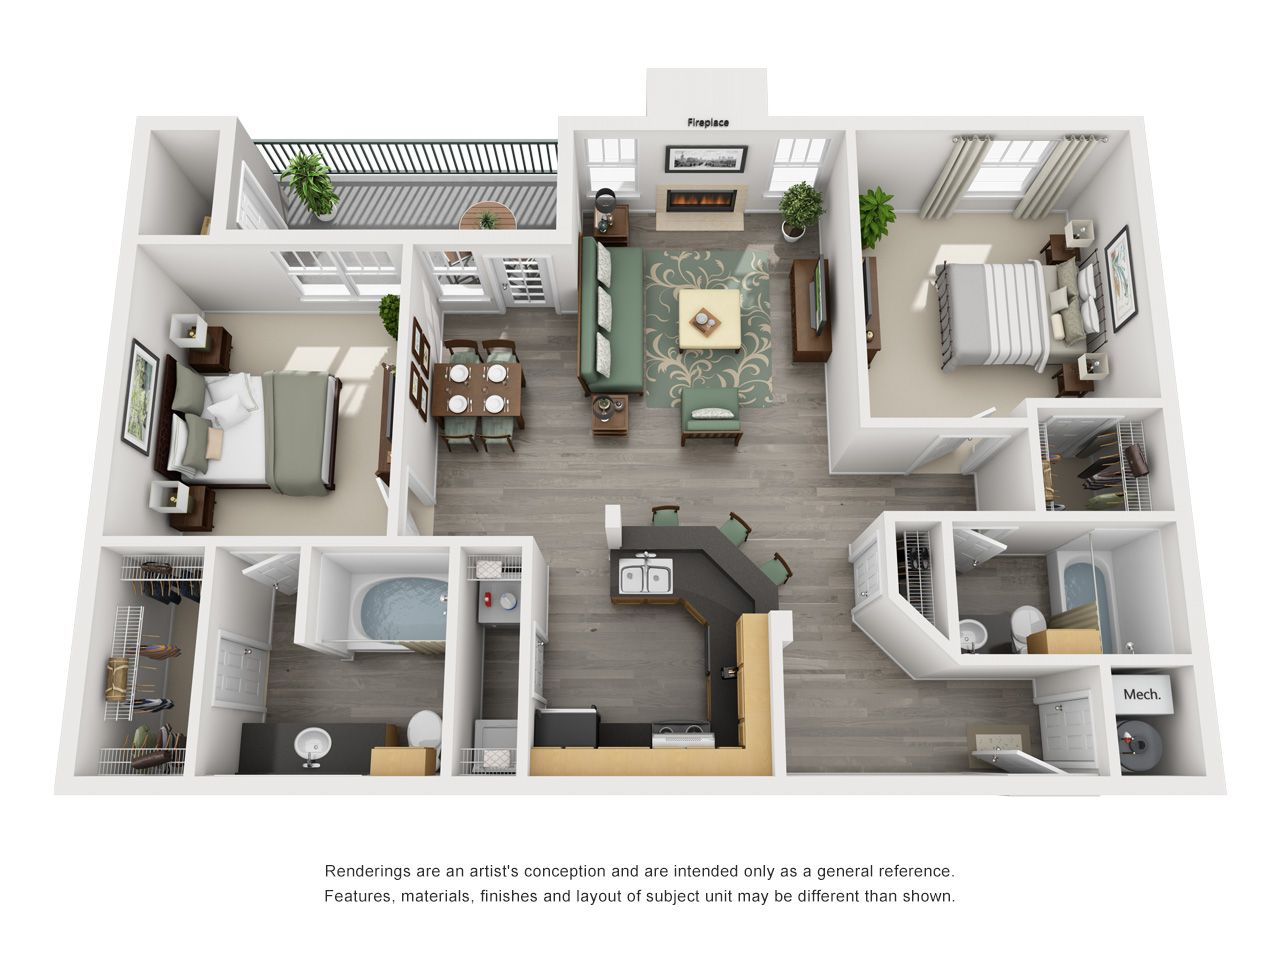 Luxury 1 2 And 3 Bedroom Apartments In Bolingbrook Il Bolingbrook Illinois Apartment Steadfas House Floor Design Apartment Layout Apartment Floor Plans